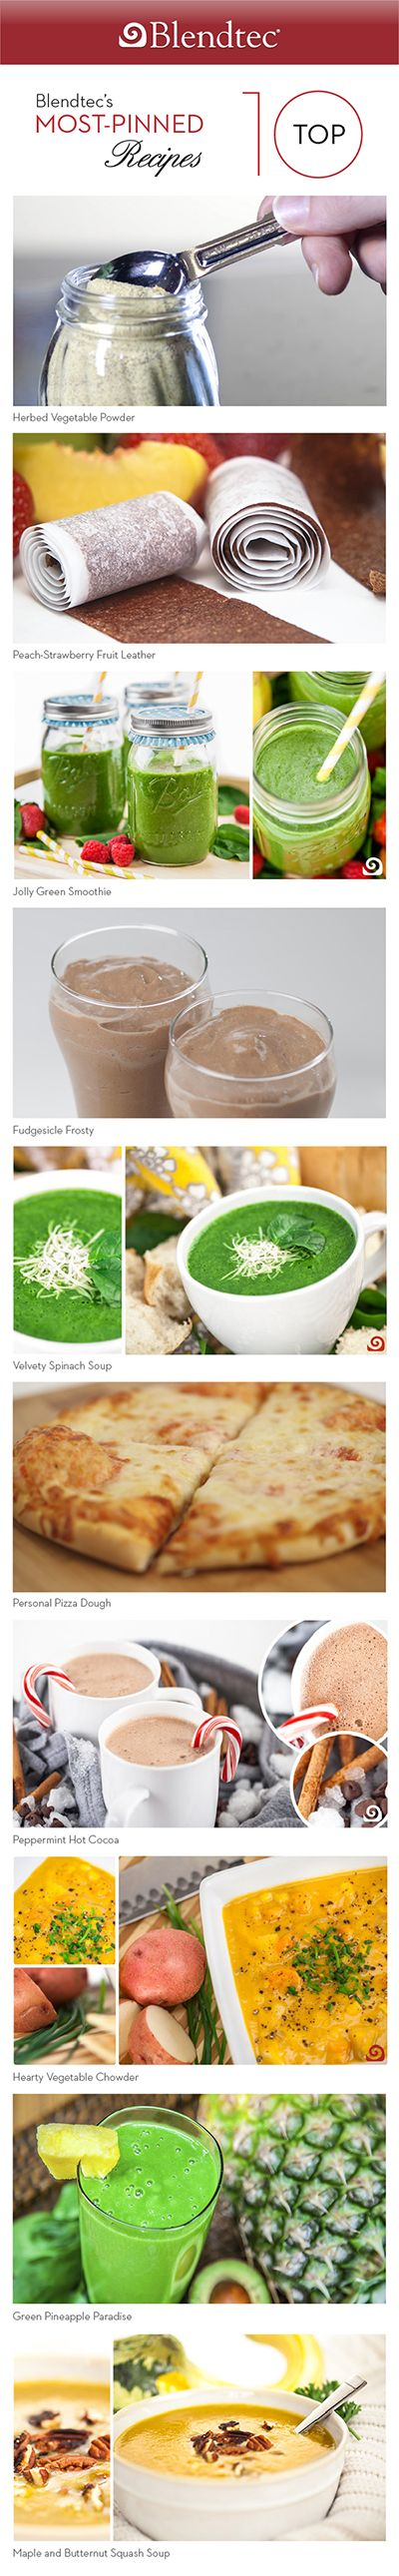 We love getting inspiration for our blender recipes from Pinterest. Click here to see Blendtec's most pinned recipes.